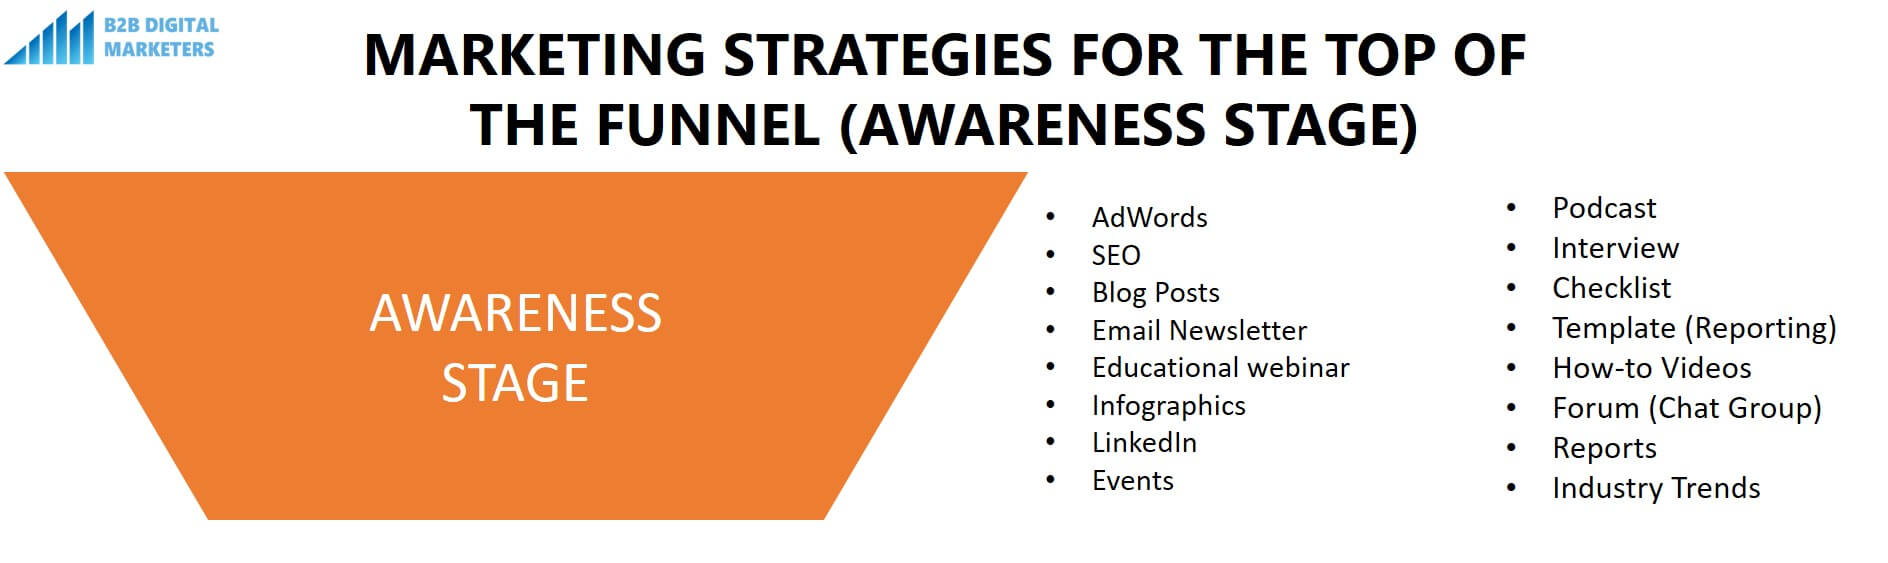 marketing strategies for top of the funnel awareness stage